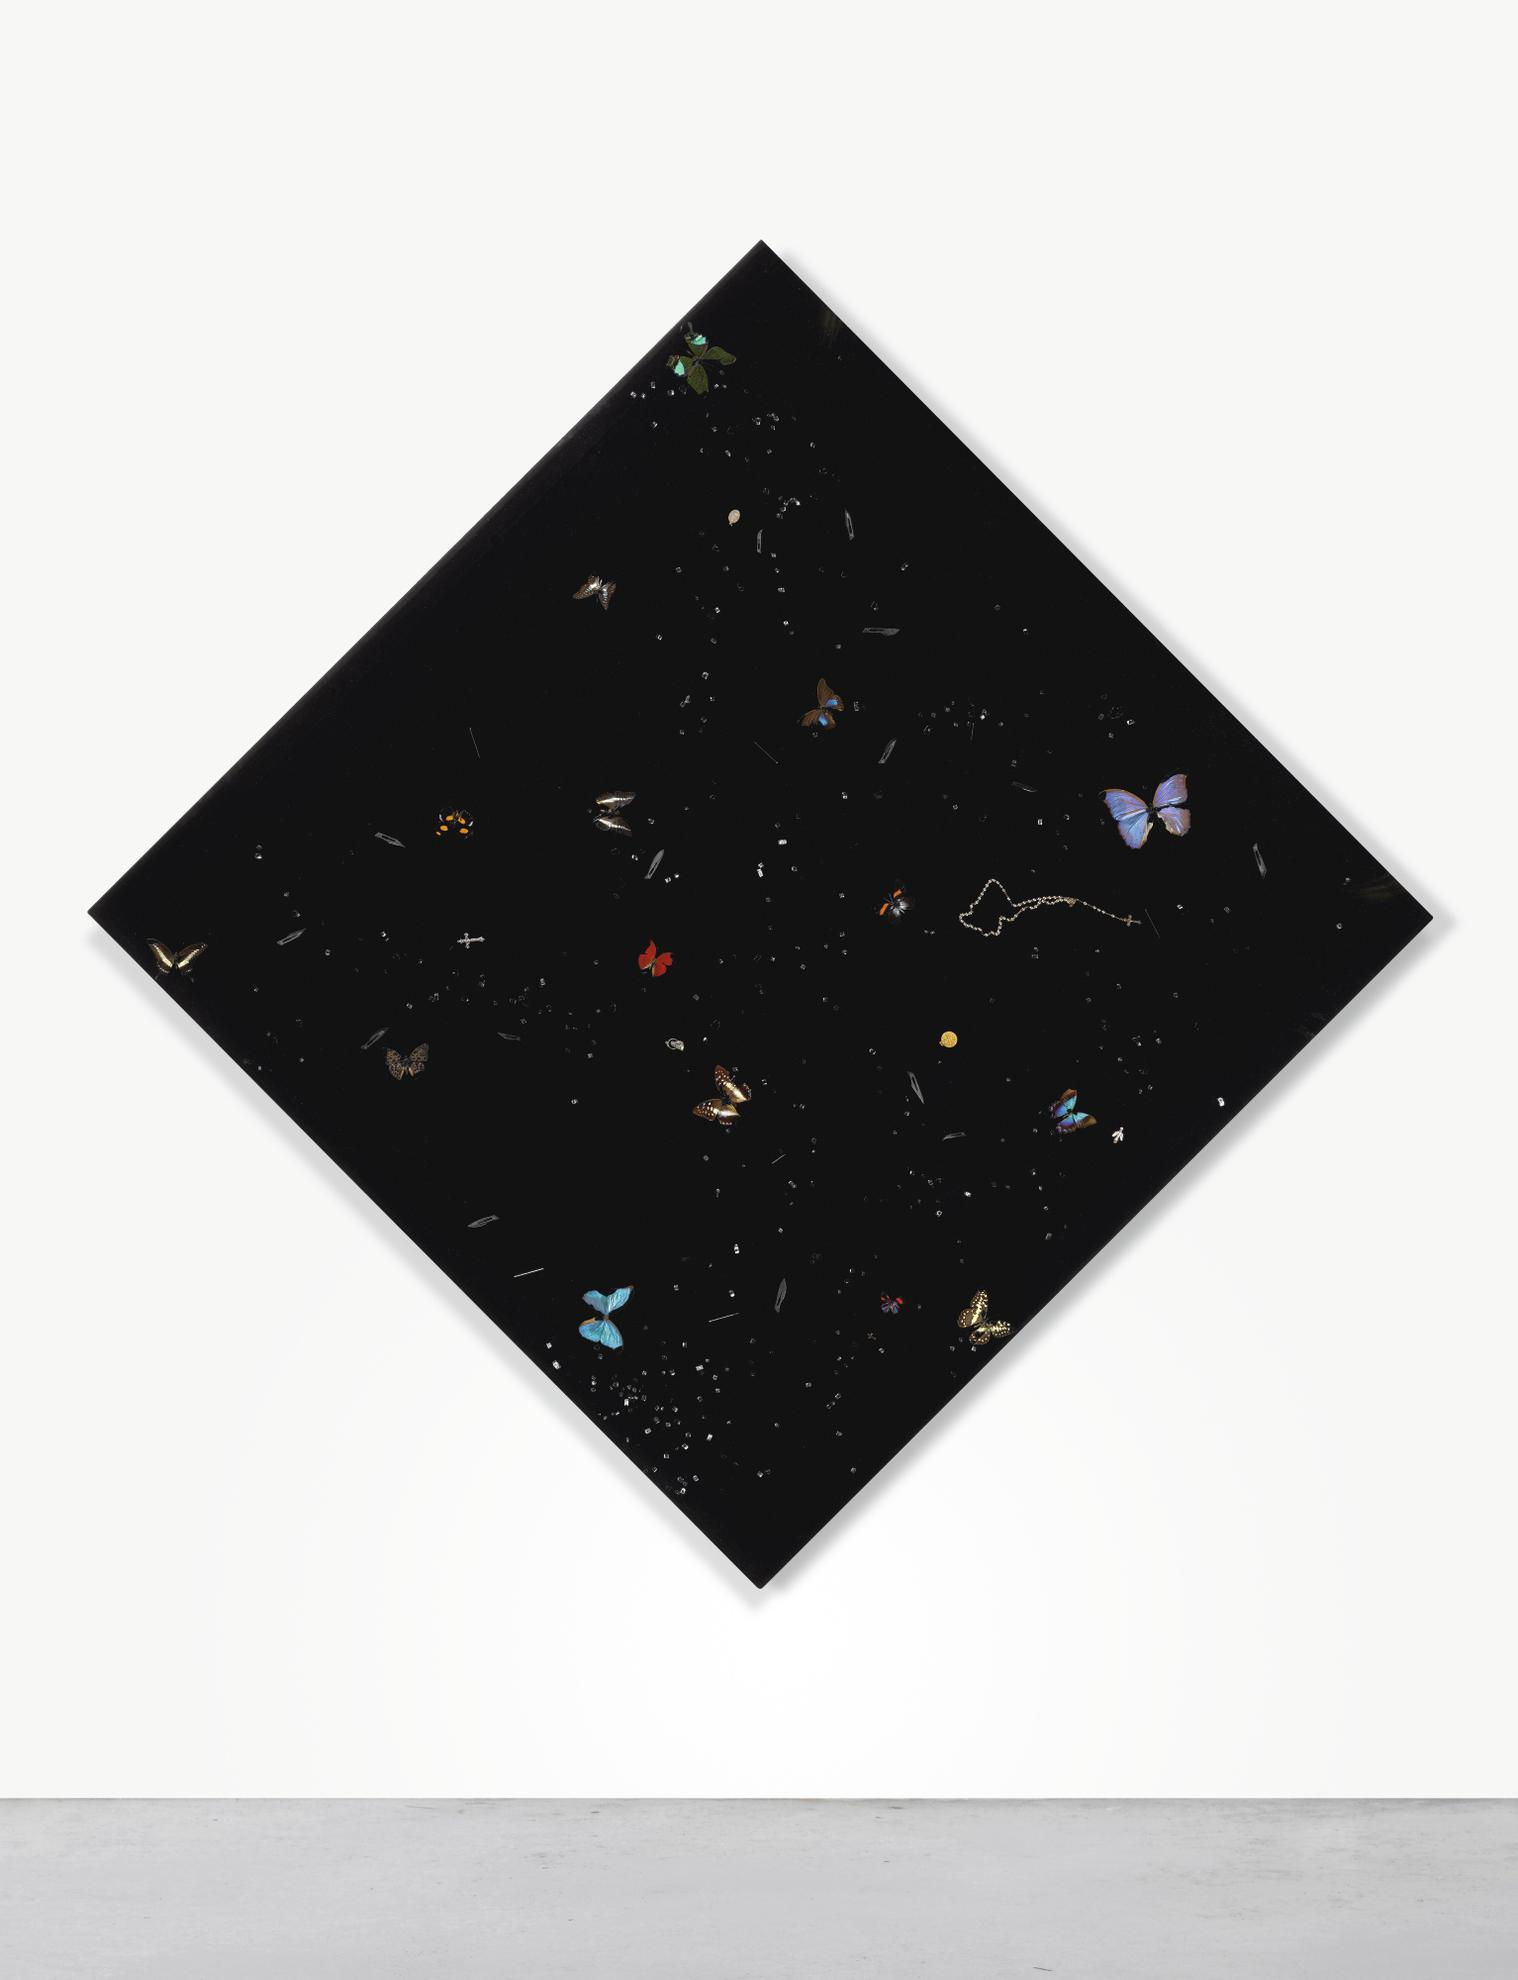 Damien Hirst-Sometimes Life Is Really, Really, Really Dark-2008